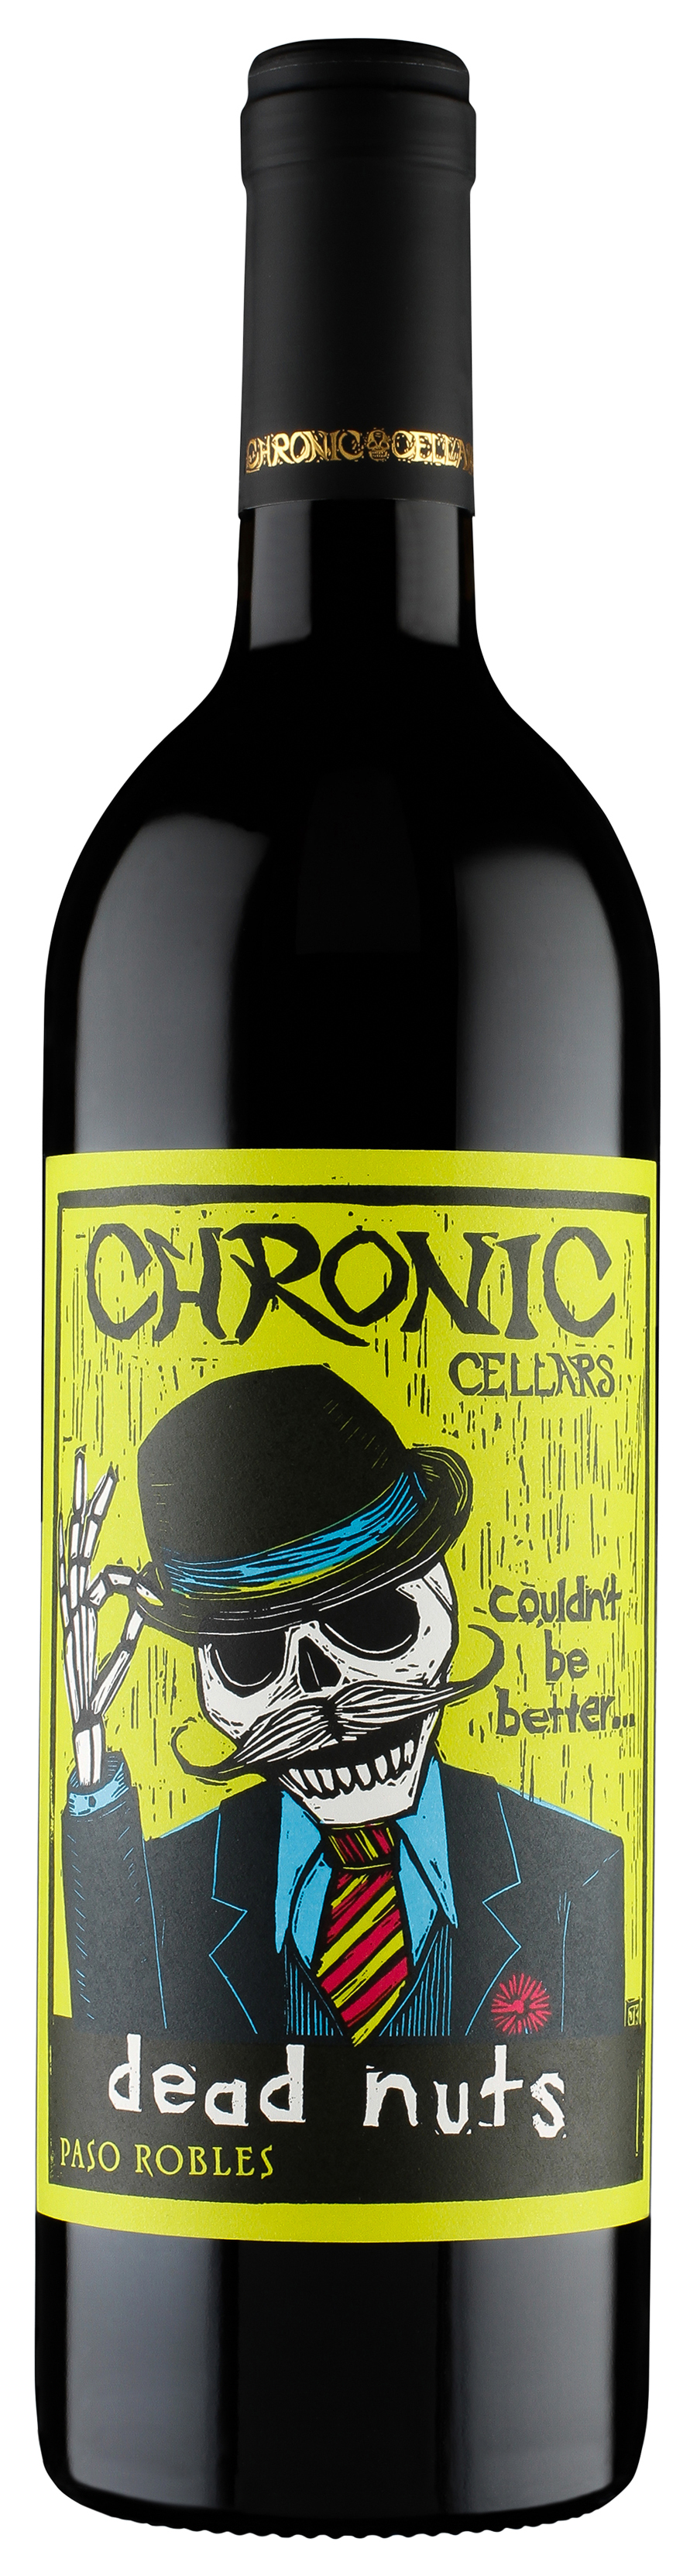 ChronicCellars_DeadNuts_BottleShot.jpg